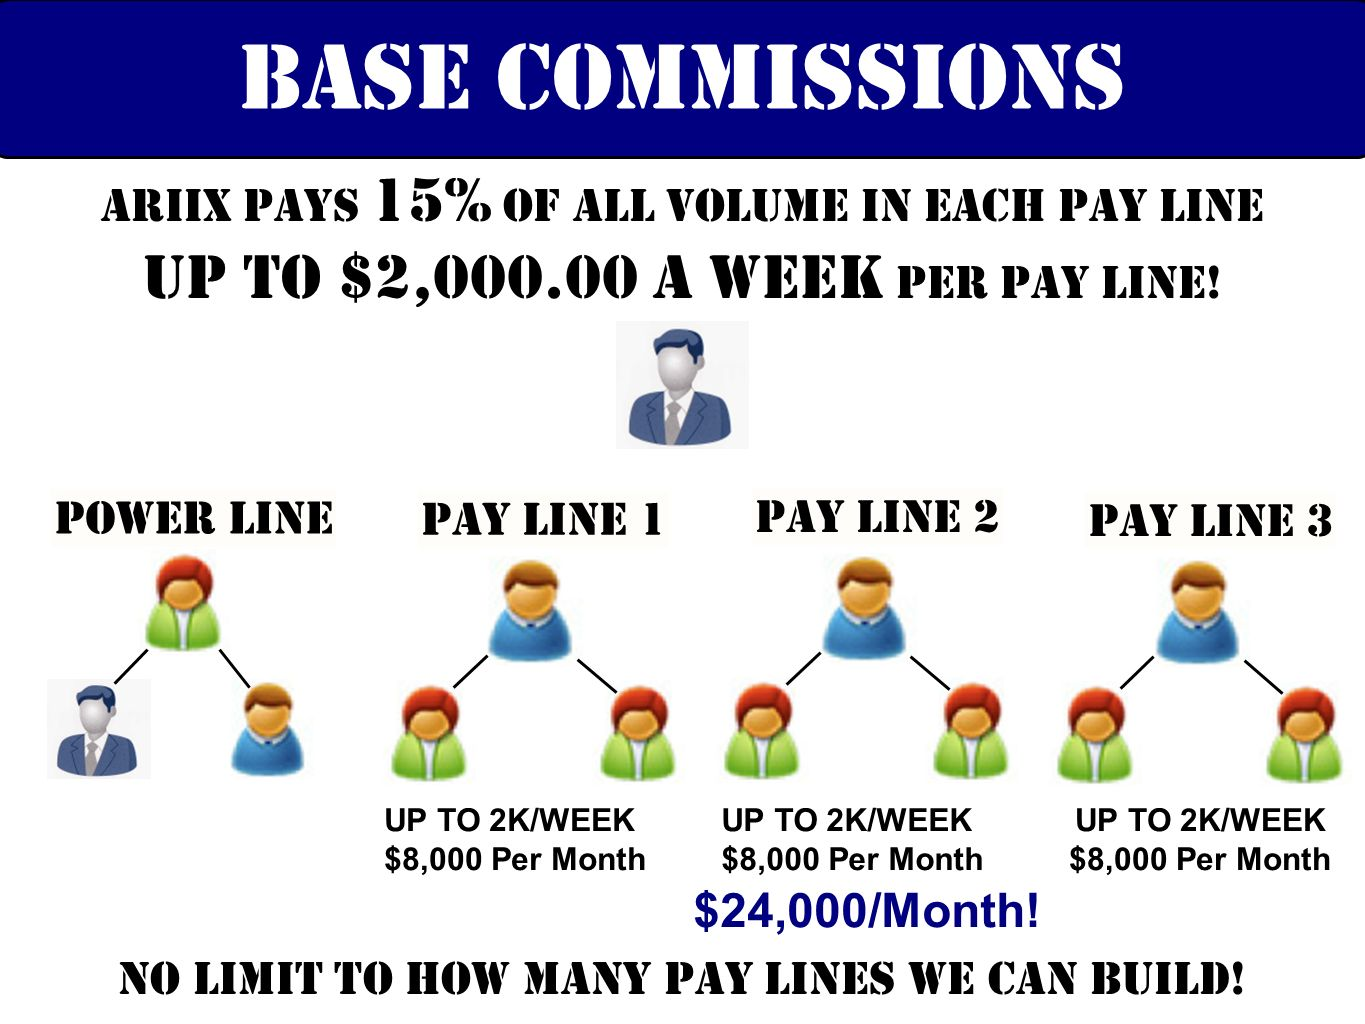 No Limit to how many pay lines we can build!